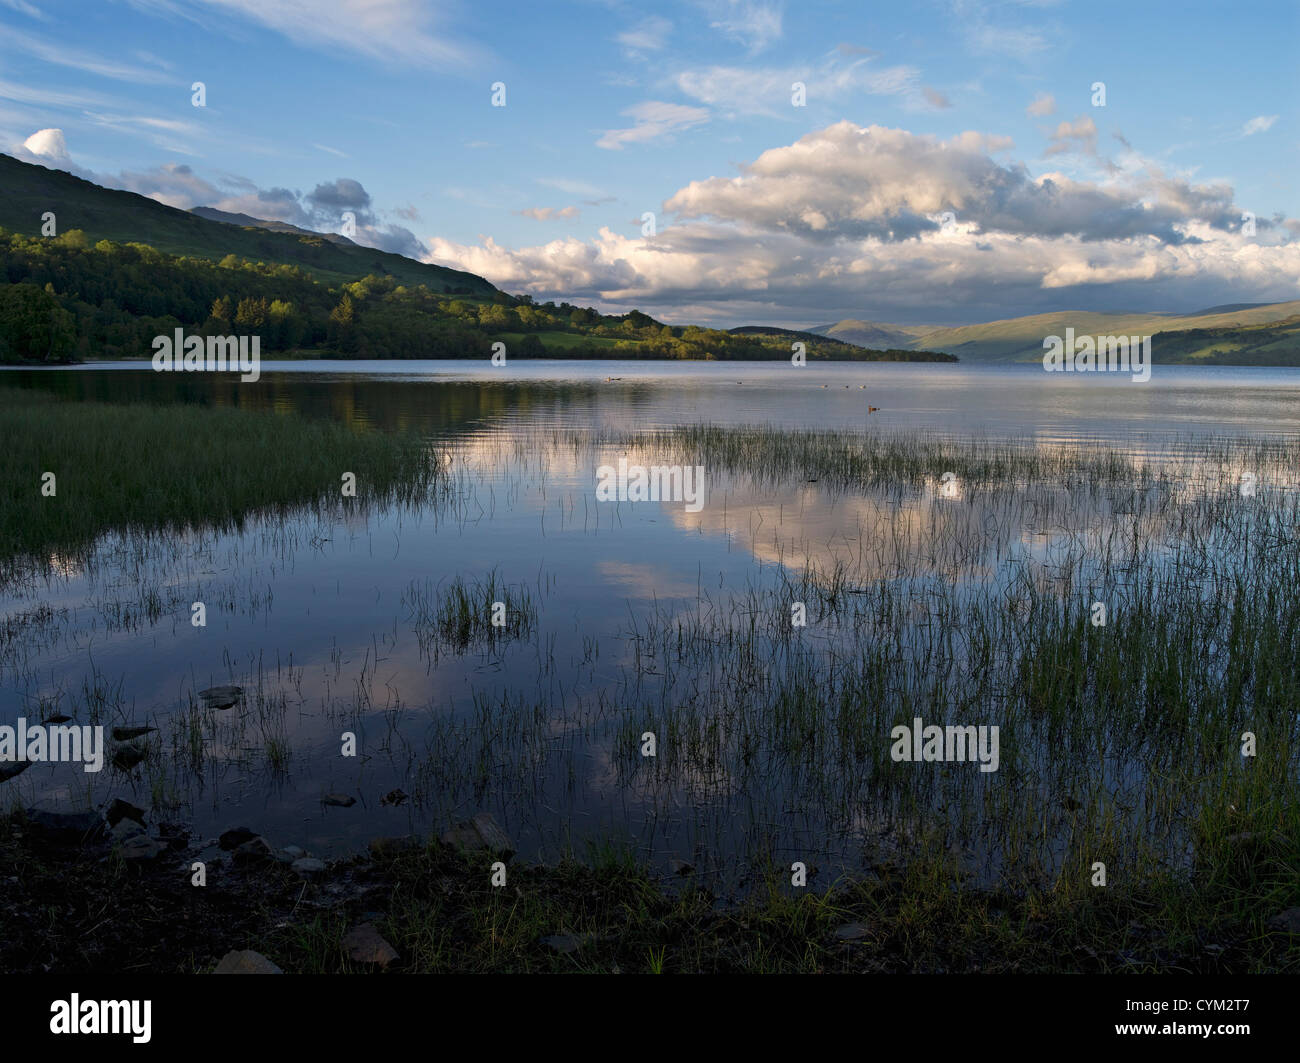 Soft evening light on still lake waters with reeds and distant headlands - Stock Image